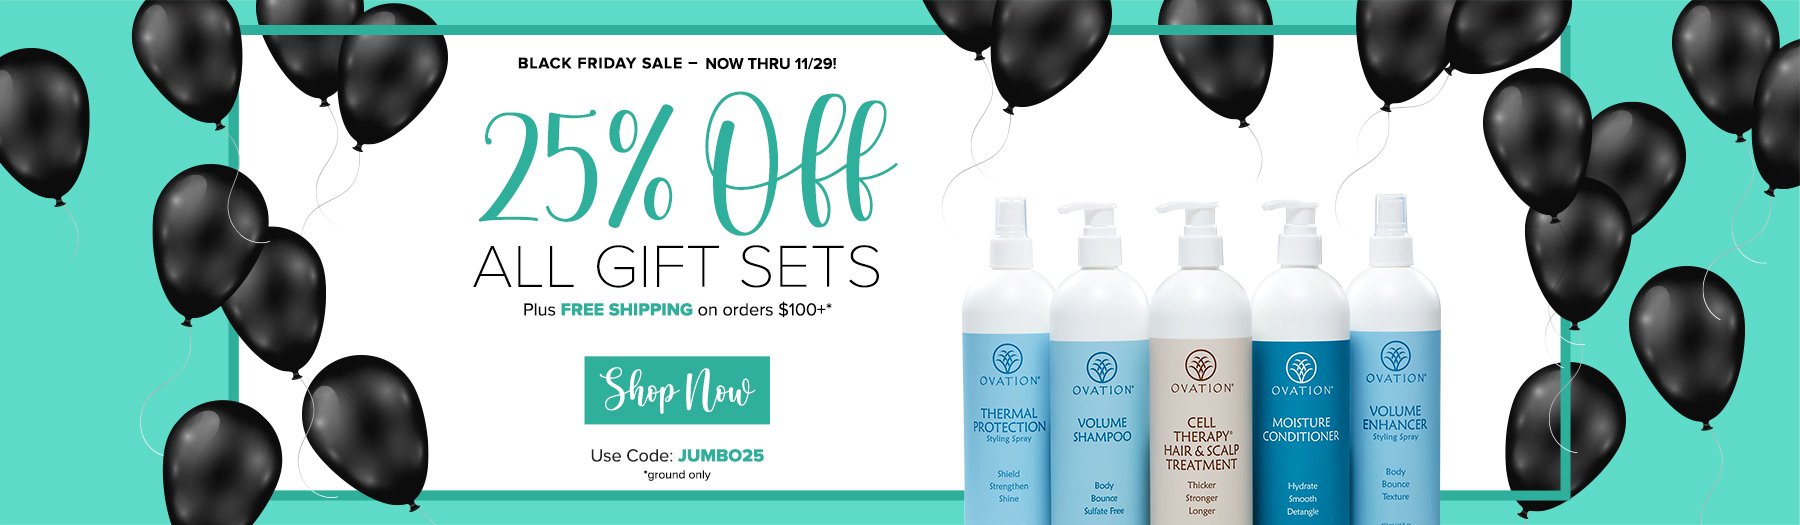 Holiday Gift Sets 25% Off - Code: JUMBO